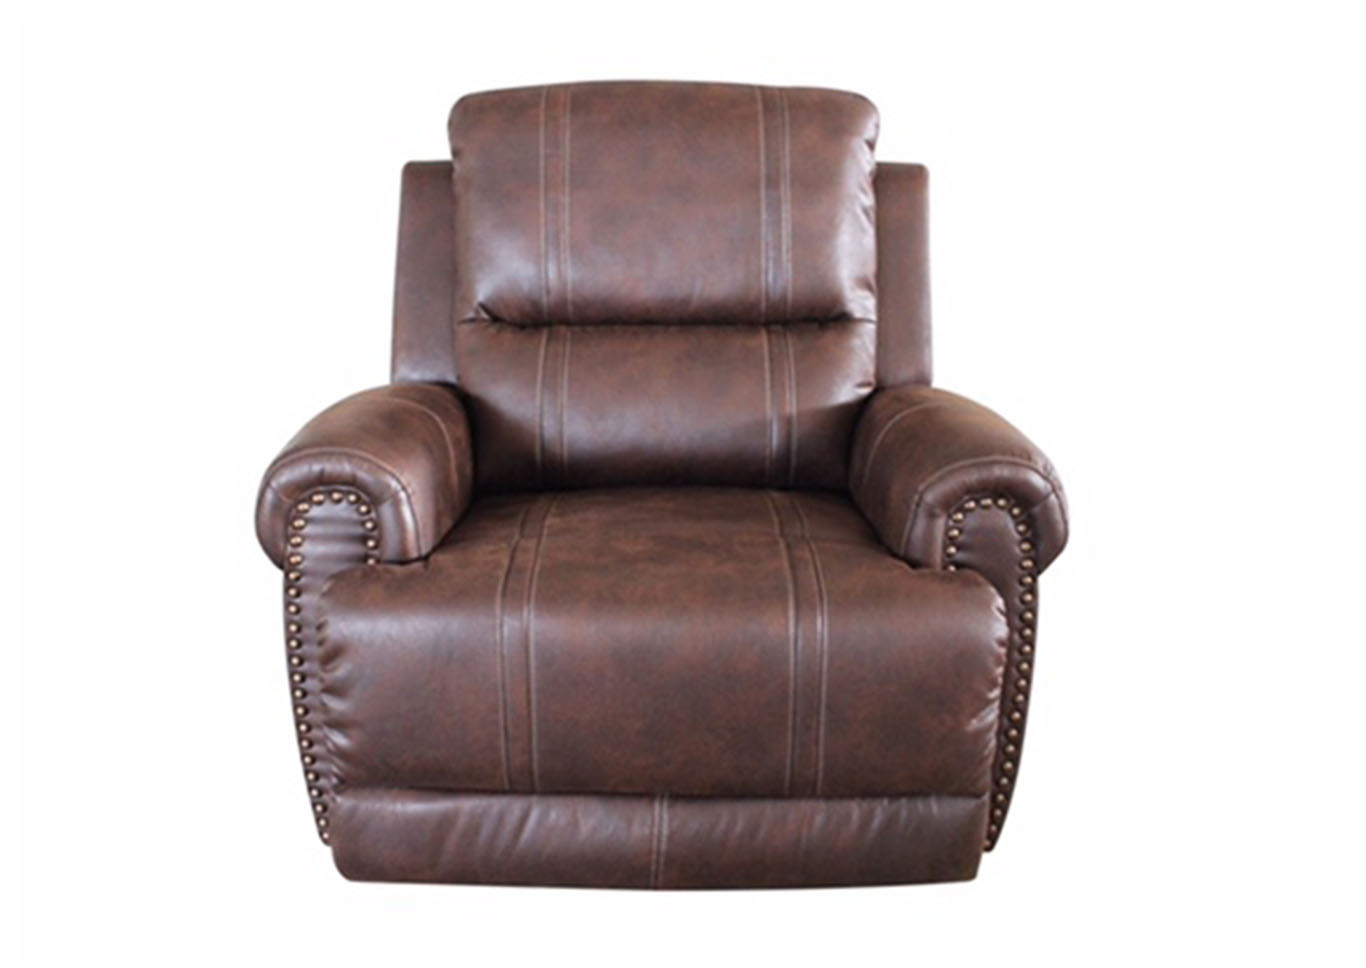 Anaheim Leather Rondo Chocolate Reclining Rocker Chair,Klaussner Home Furnishings